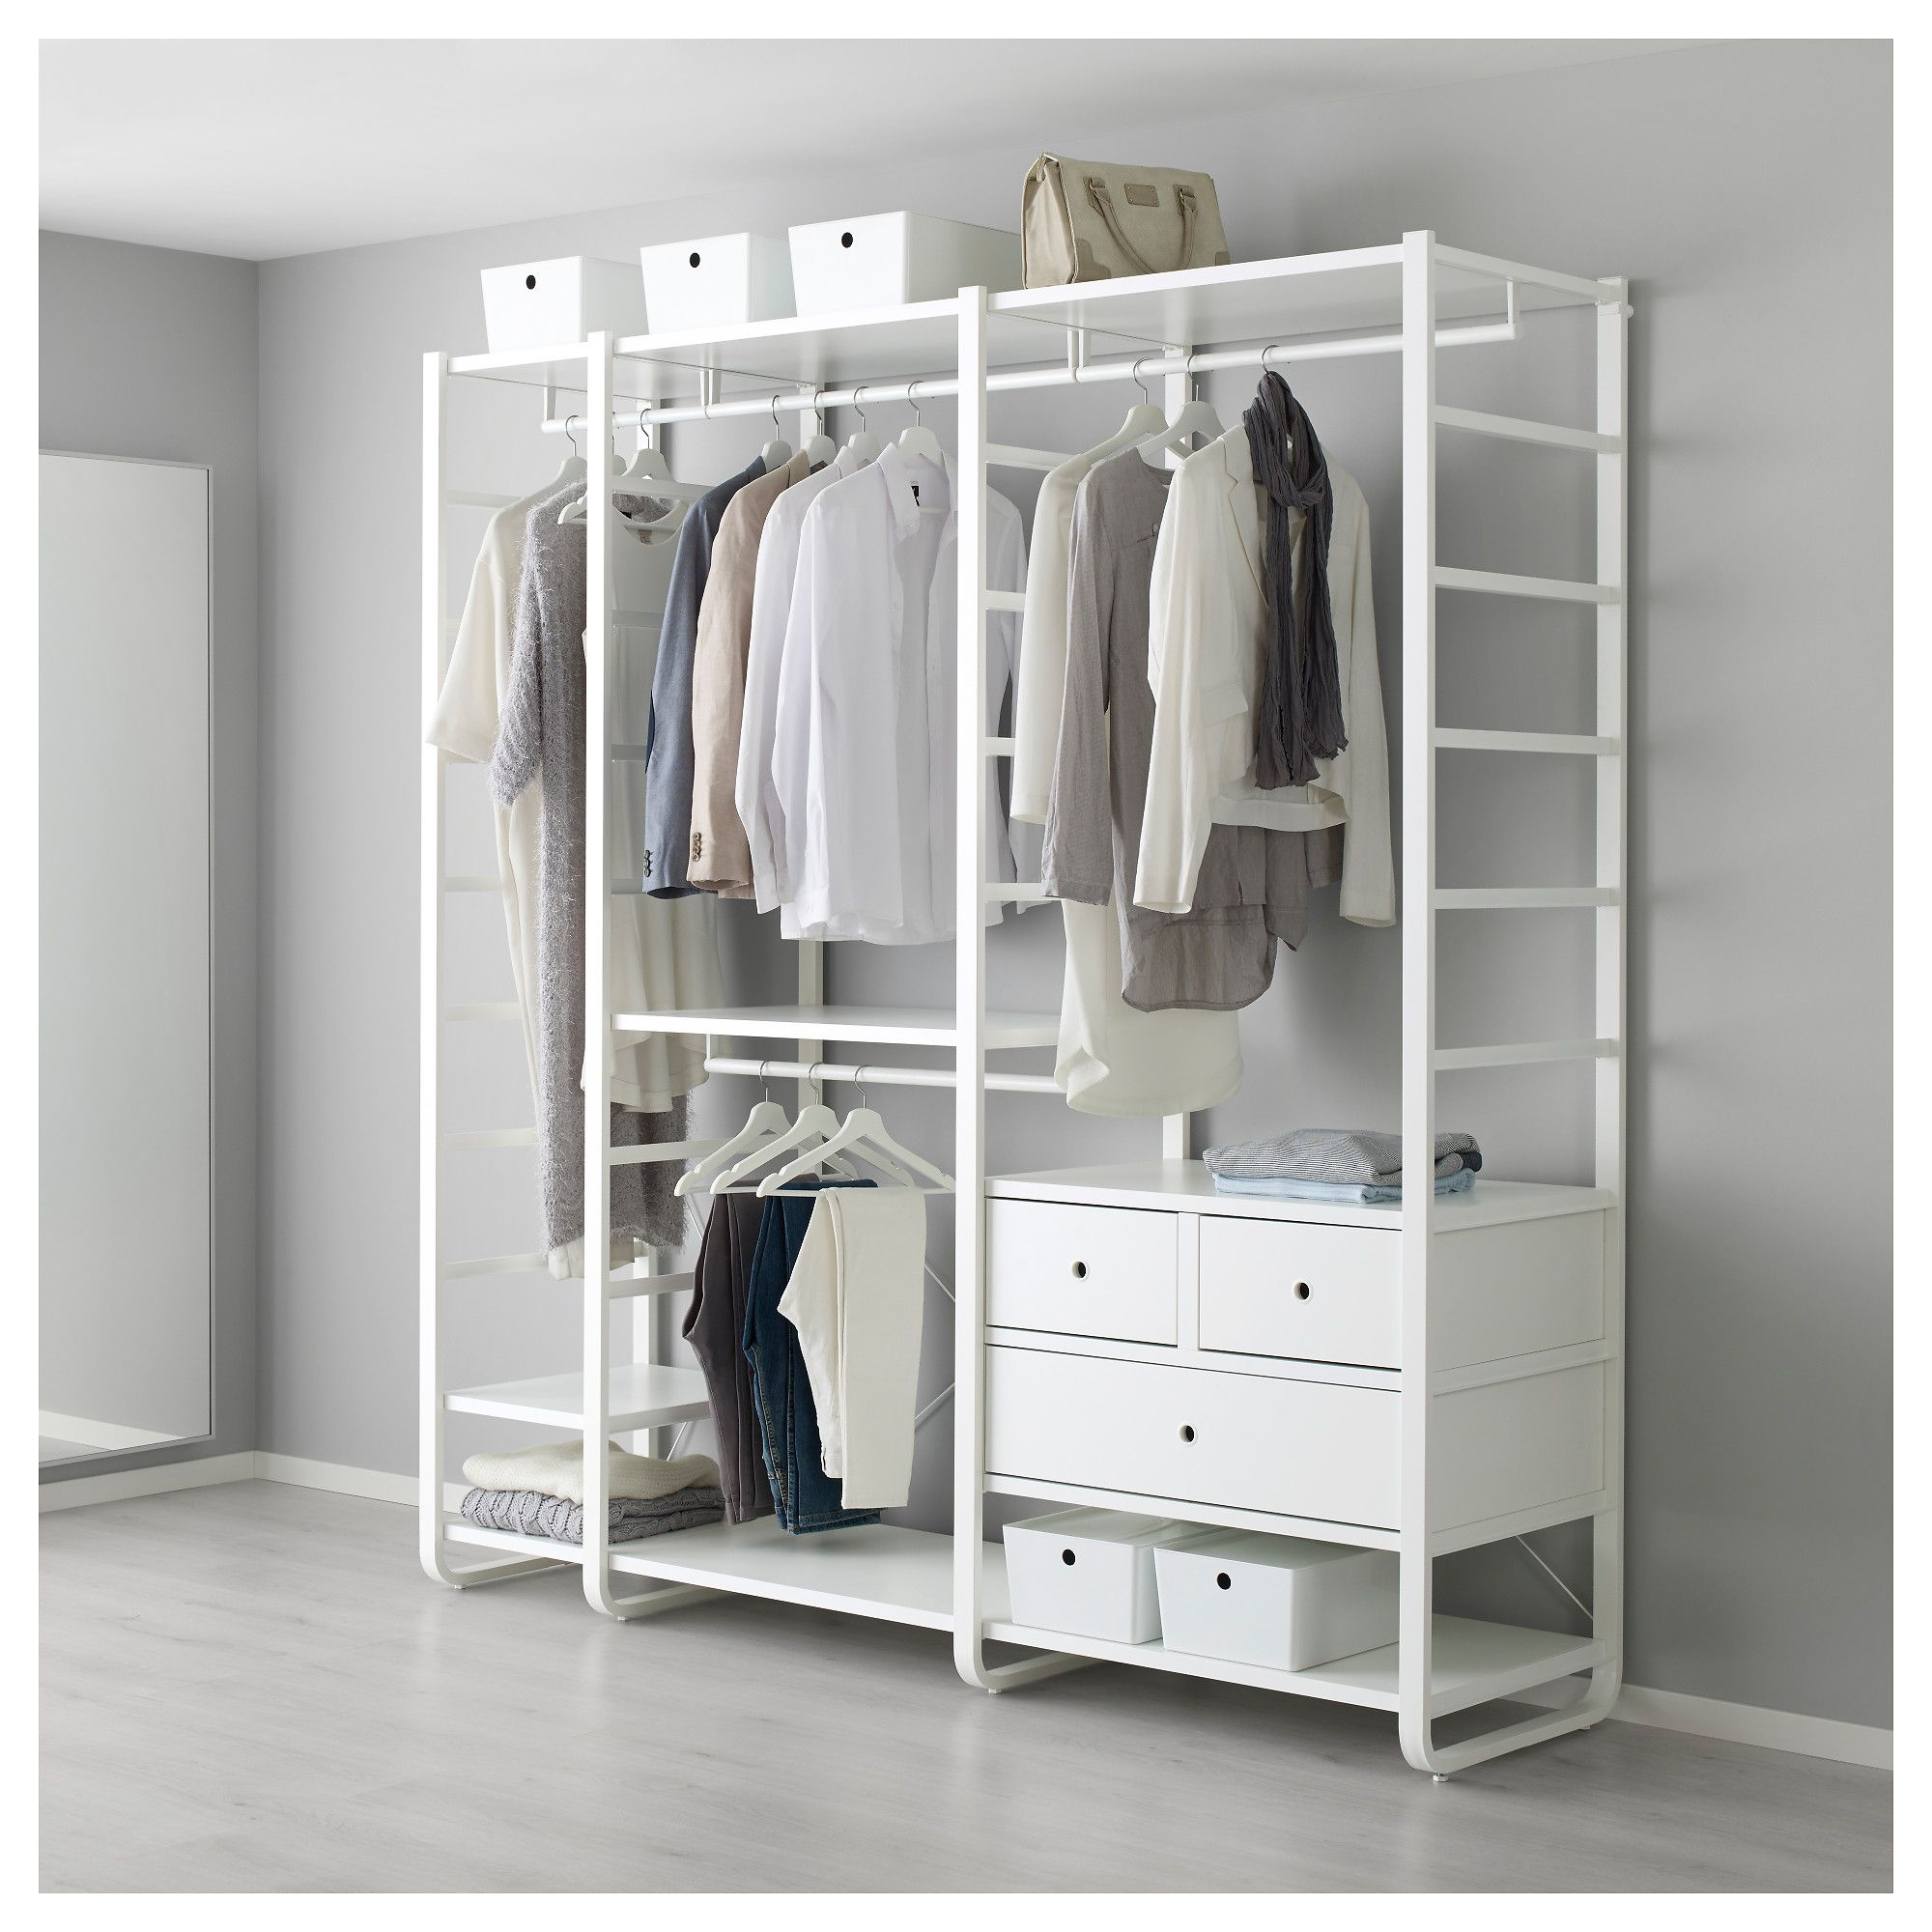 elvarli 3 sections white organization inspiration pinterest schrank kleiderschrank and. Black Bedroom Furniture Sets. Home Design Ideas